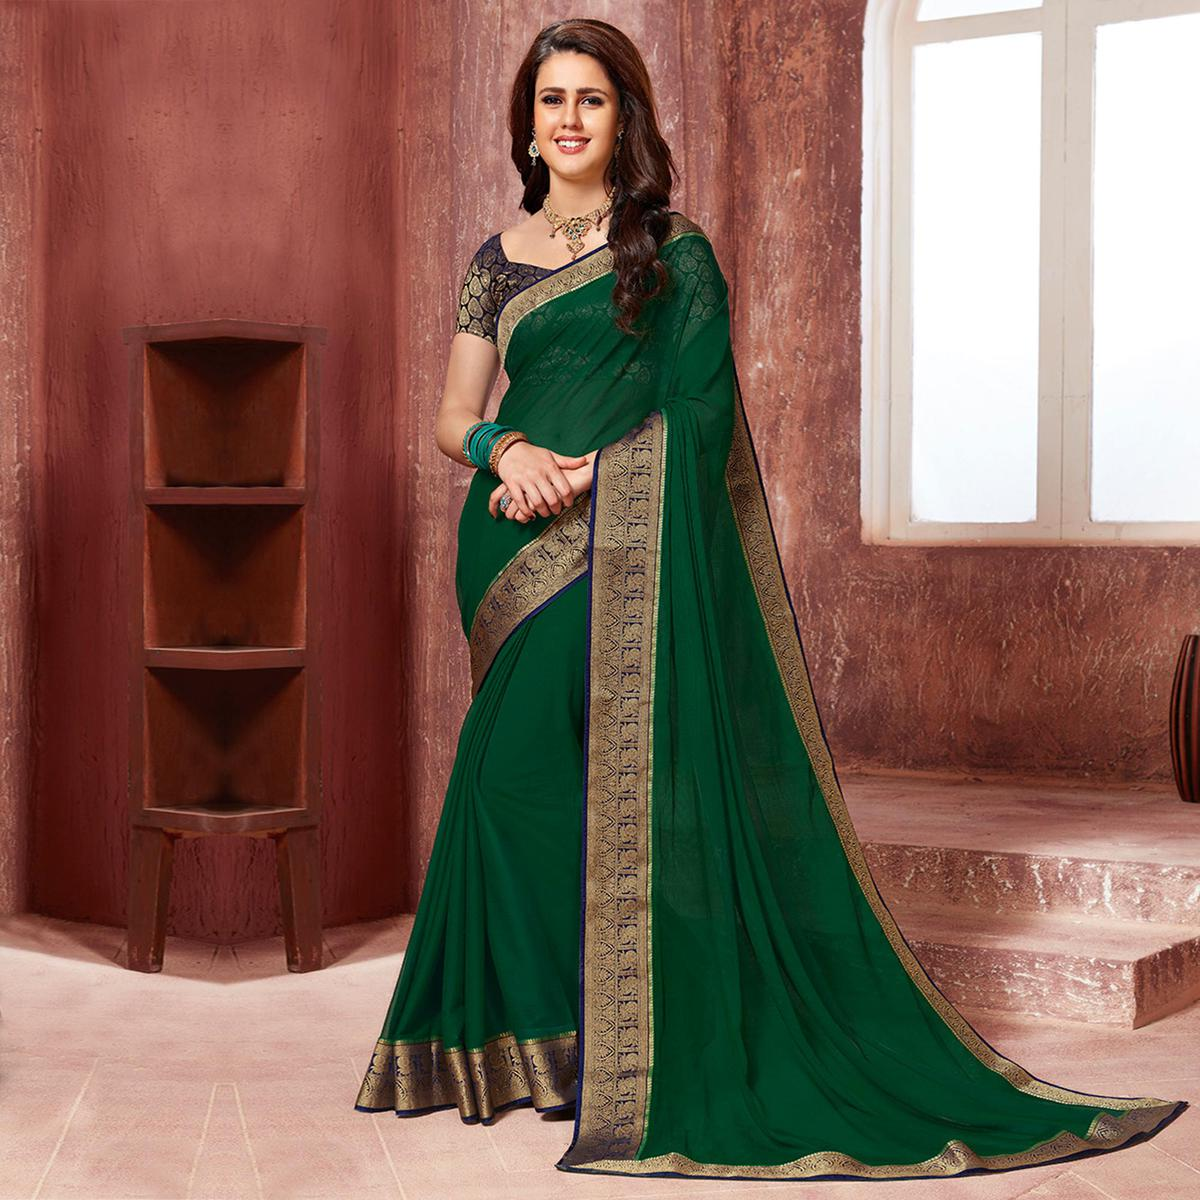 Eye-catching Green Coloured Partywear Lace Border Pure Chiffon Saree